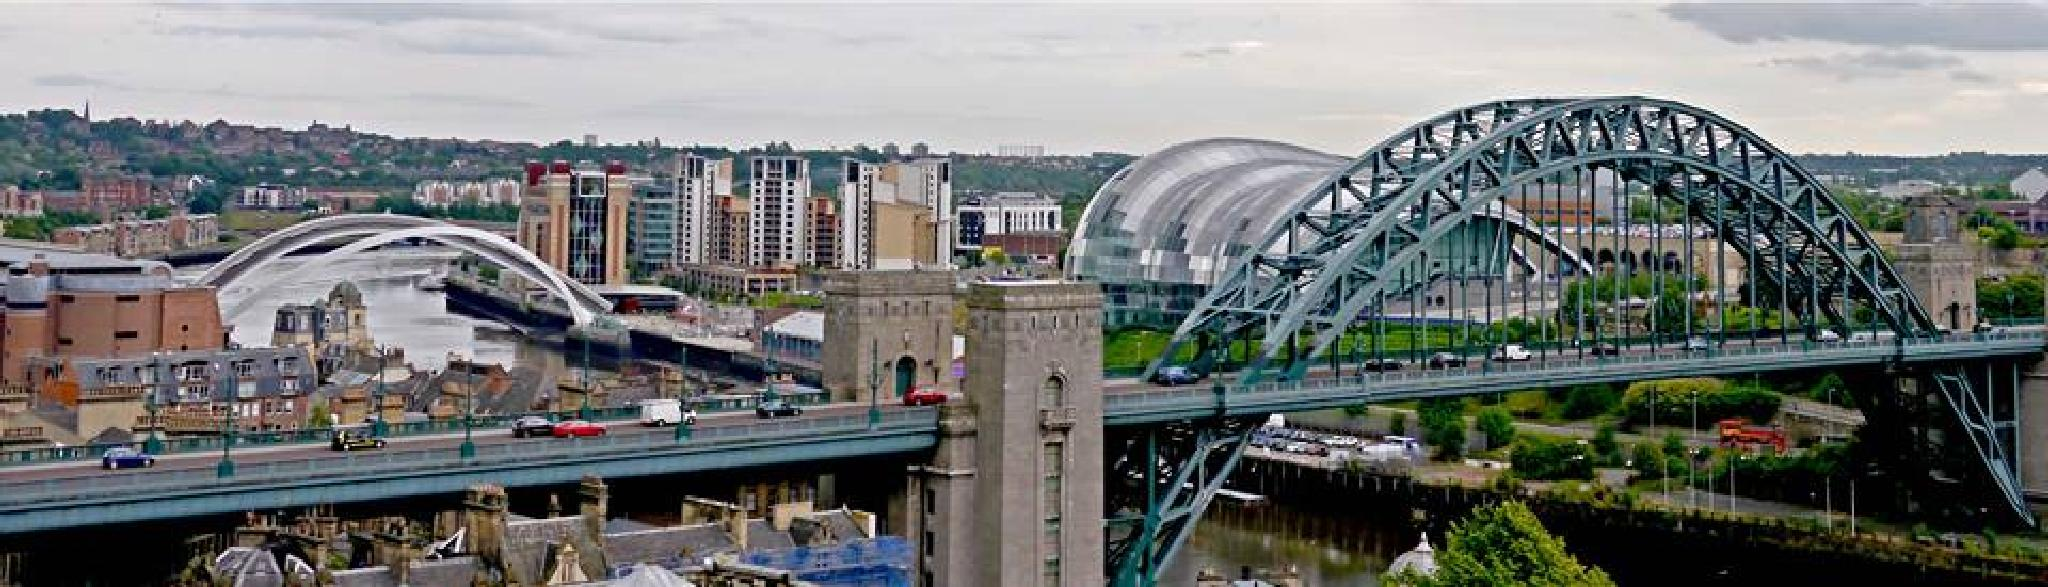 View from the Castle Keep Newcastle by Darren Turner